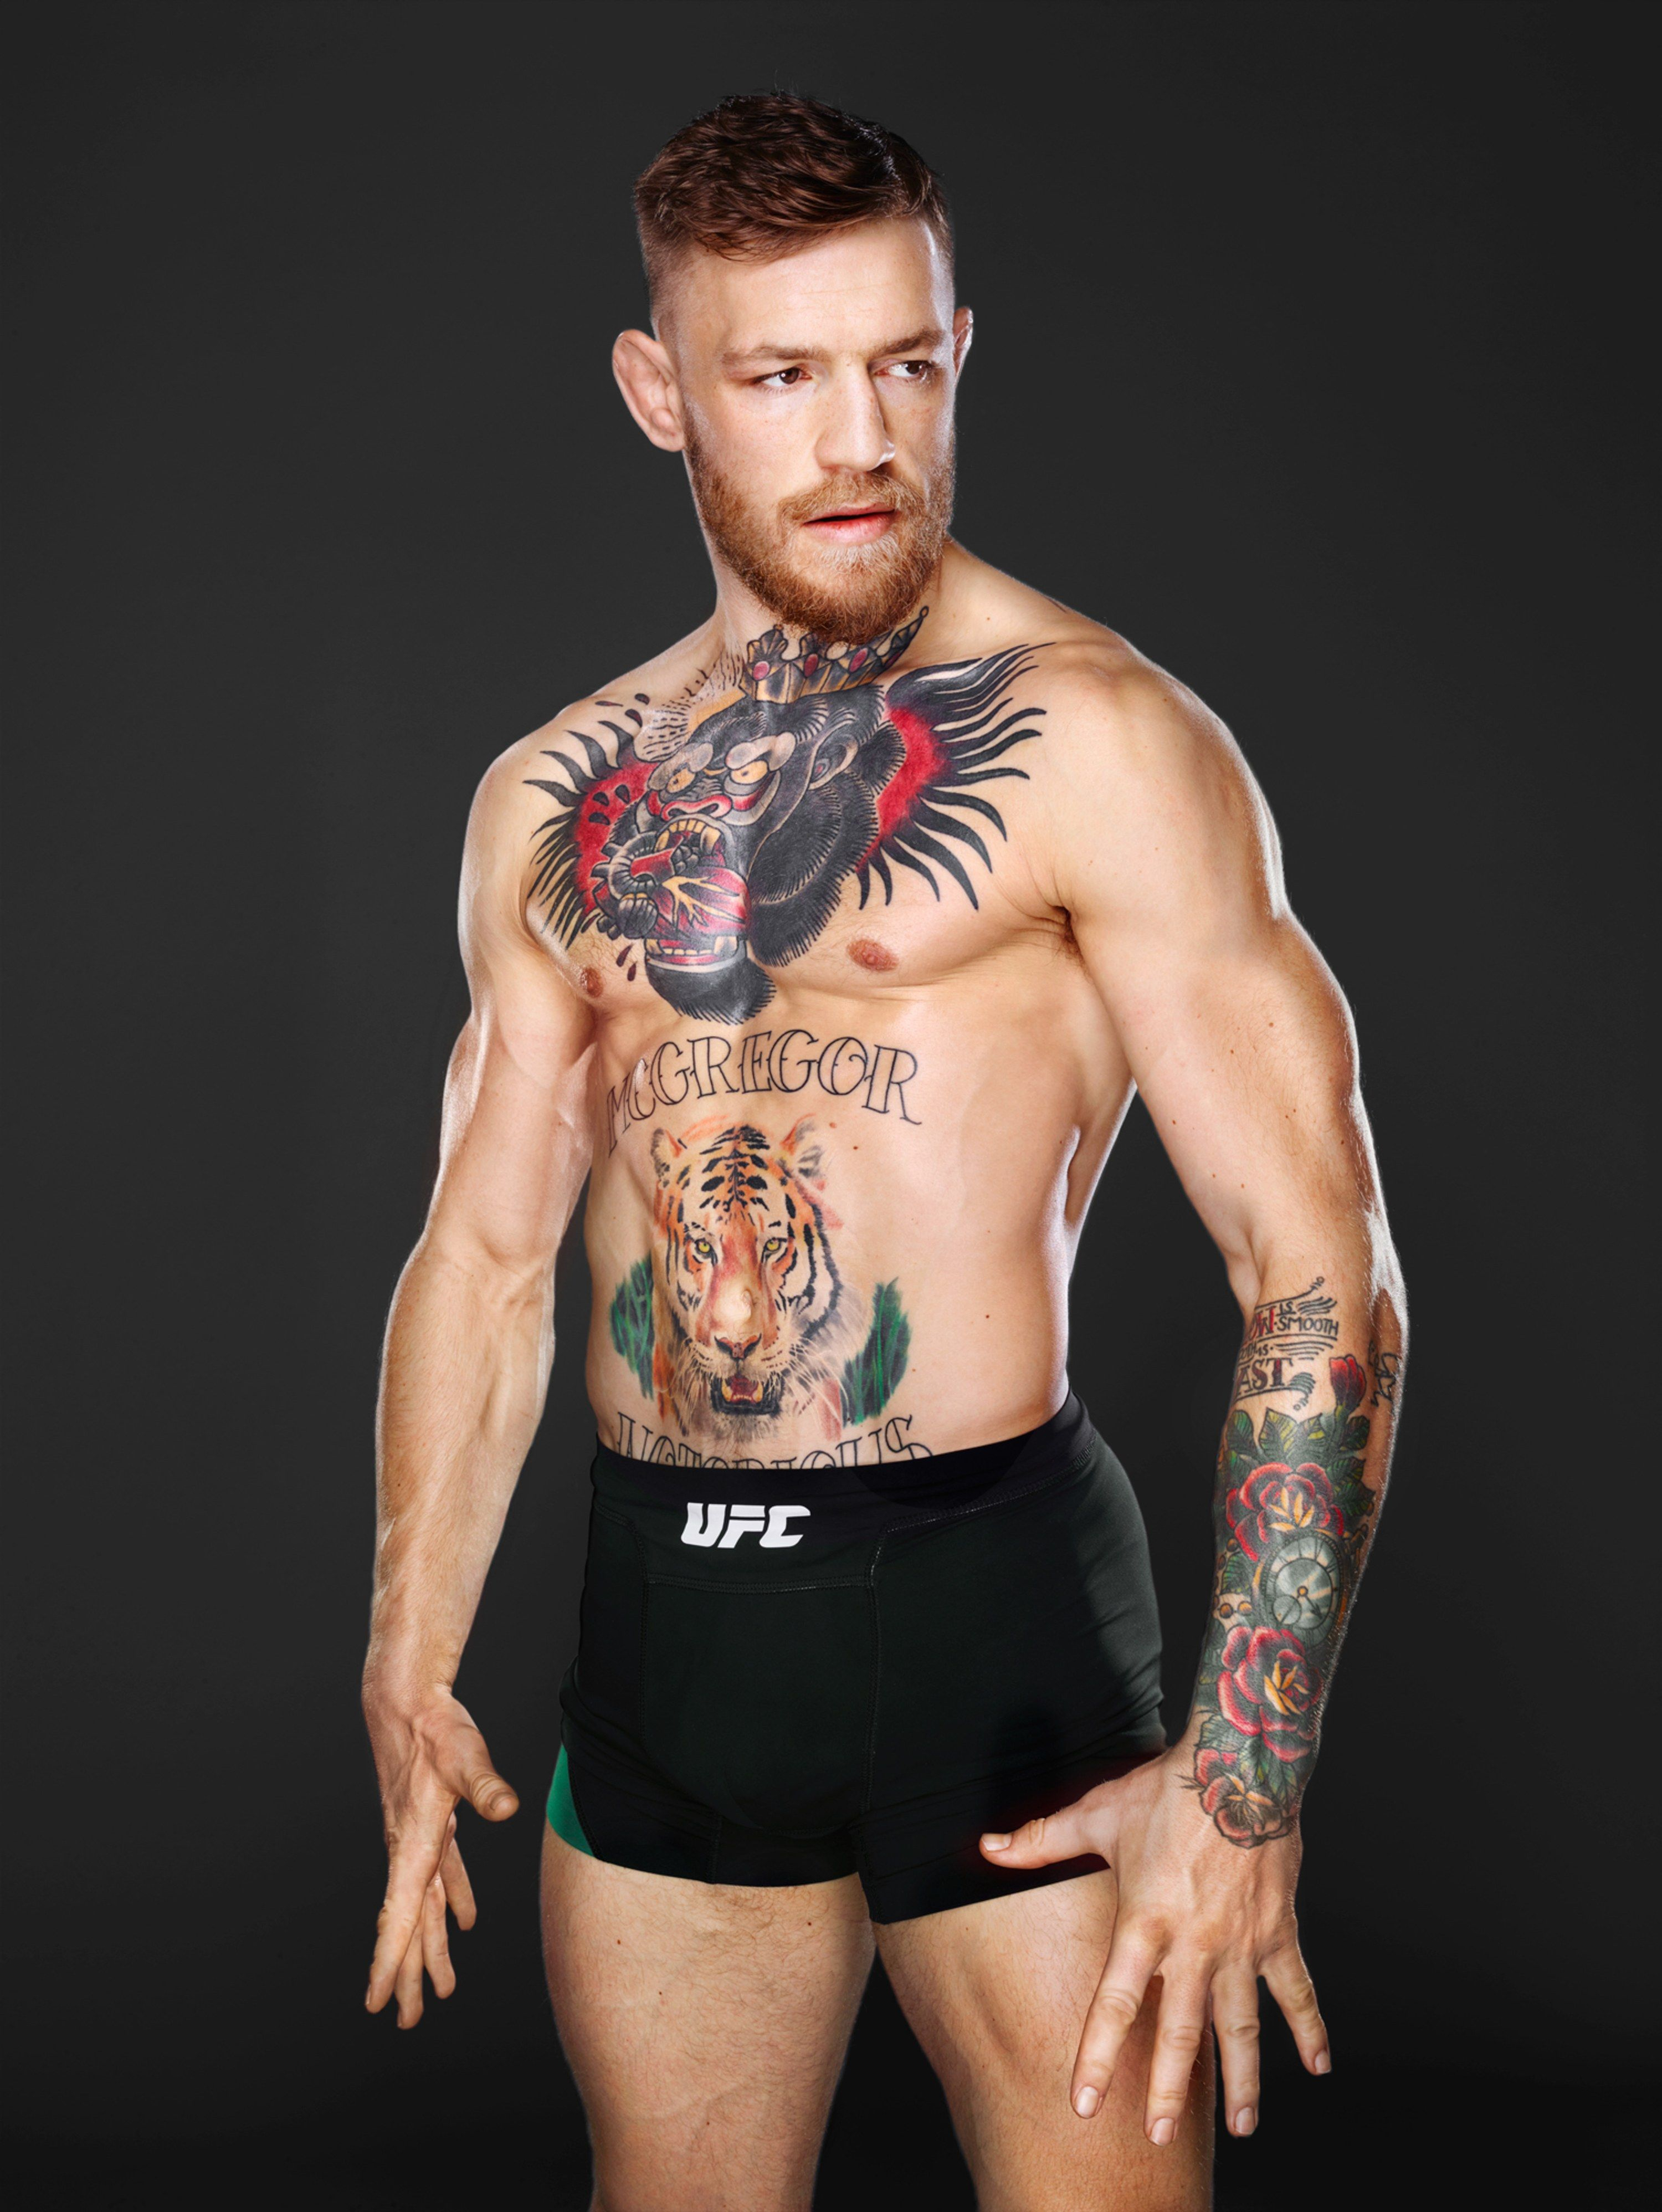 Conor Mcgregor Focus The Best Ufc Mixedmartialarts Mma with measurements 3000 X 3992